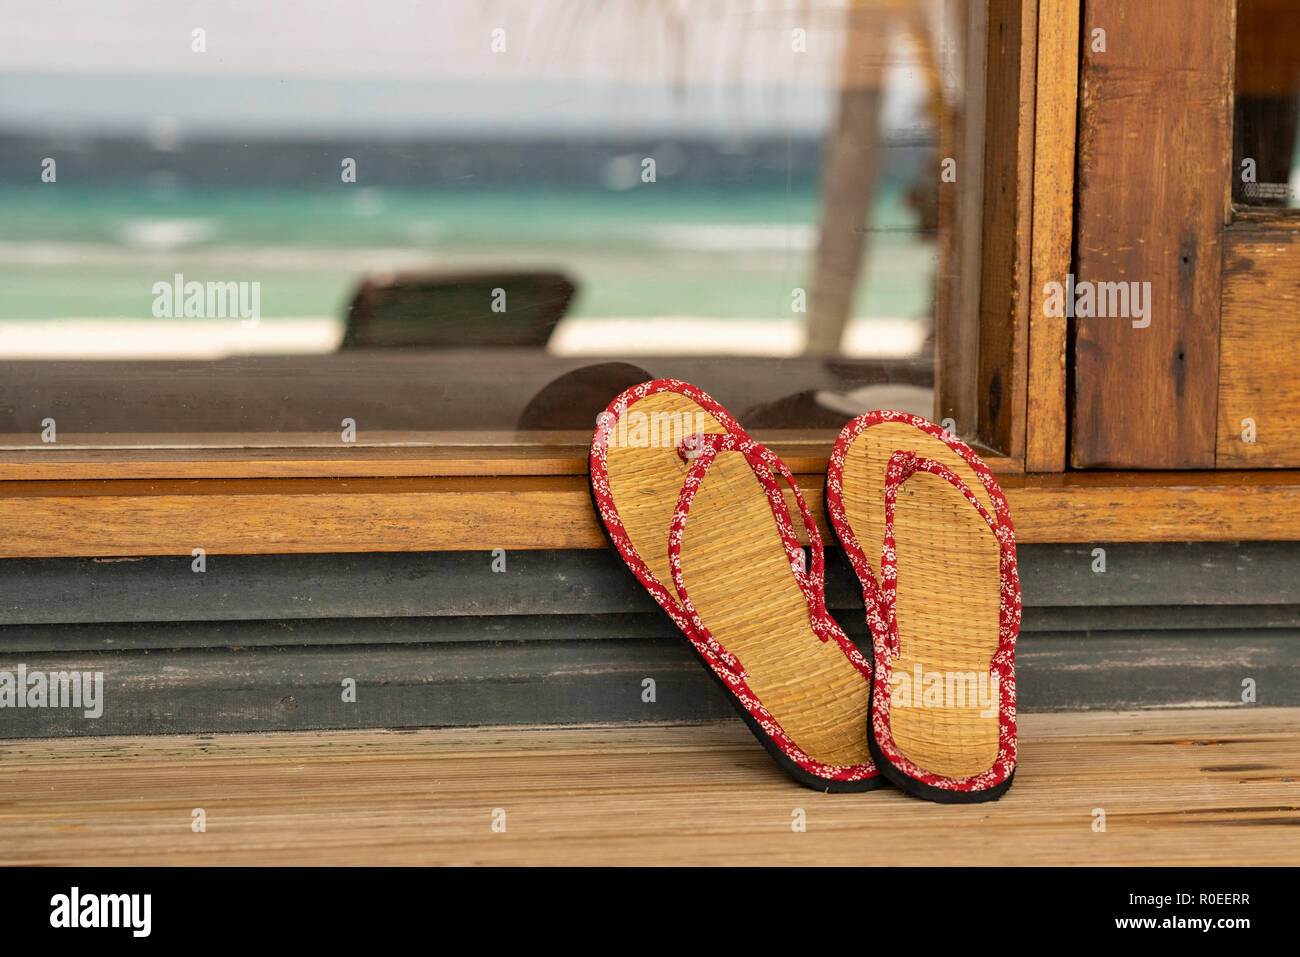 A pair of Flip Flops on a porch at the Maledives. - Stock Image